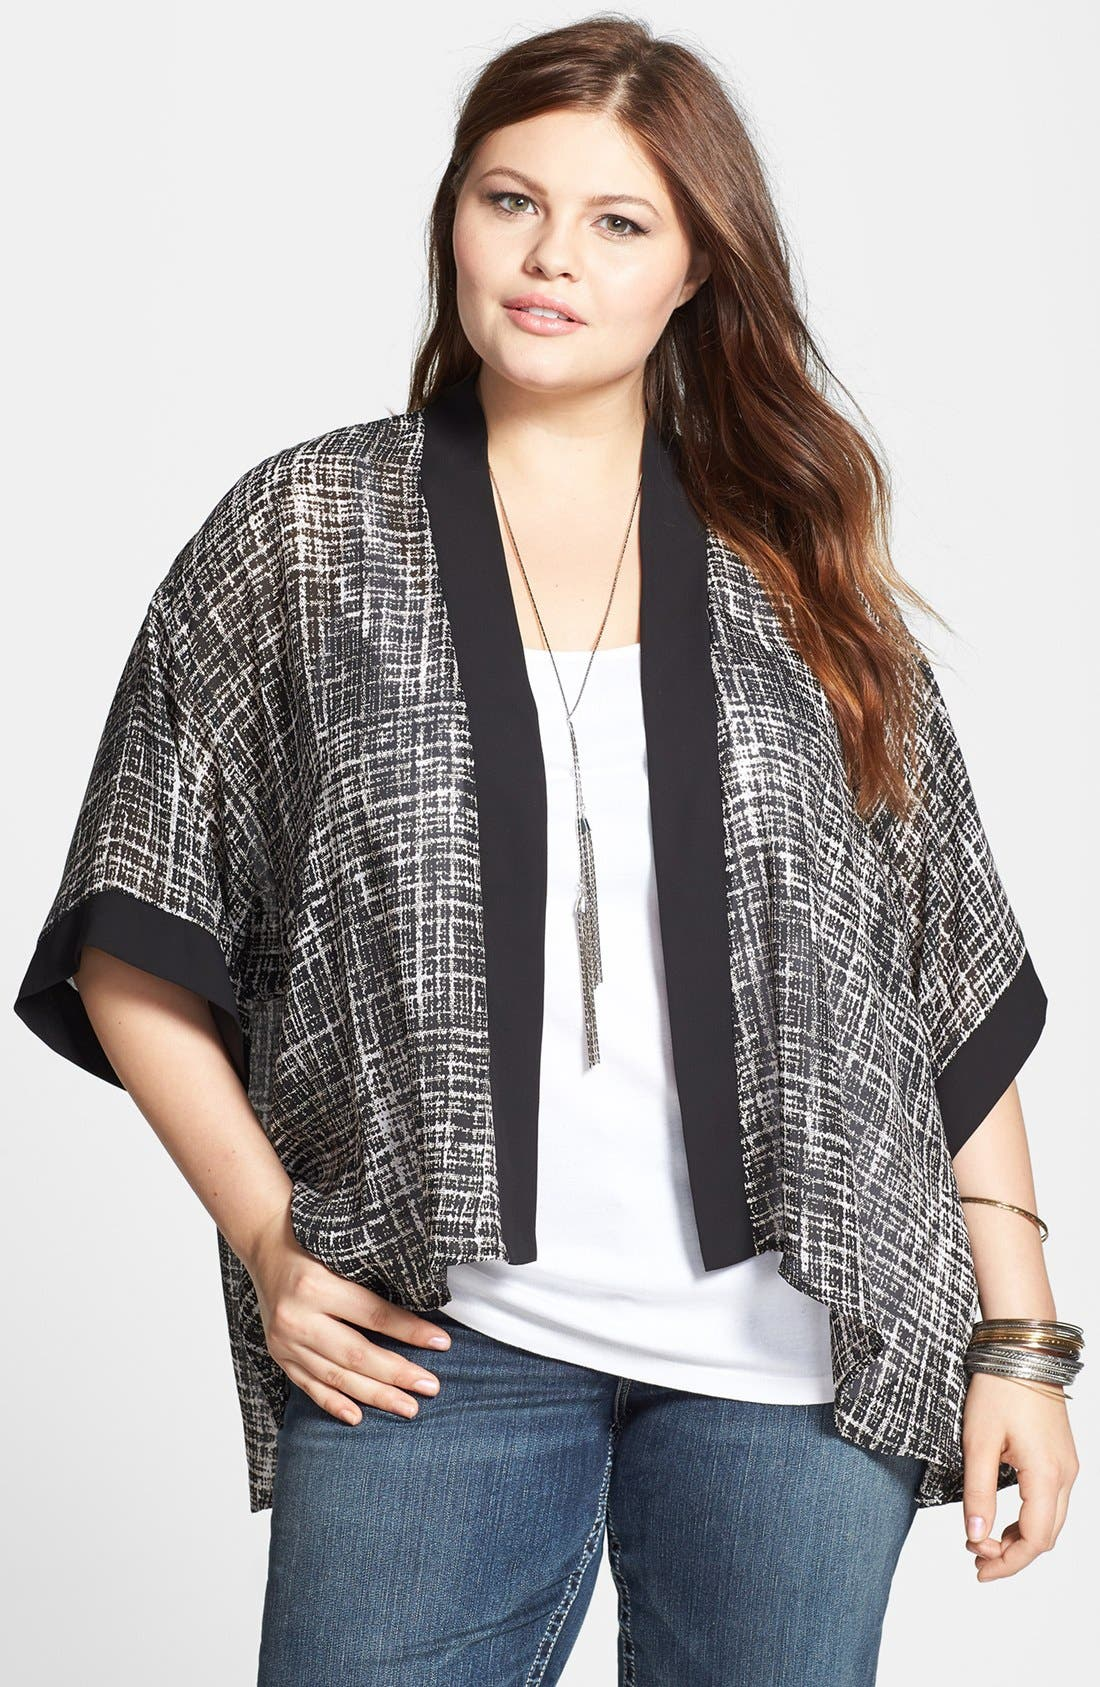 Main Image - Soprano Print Woven High/Low Cardigan (Plus Size)